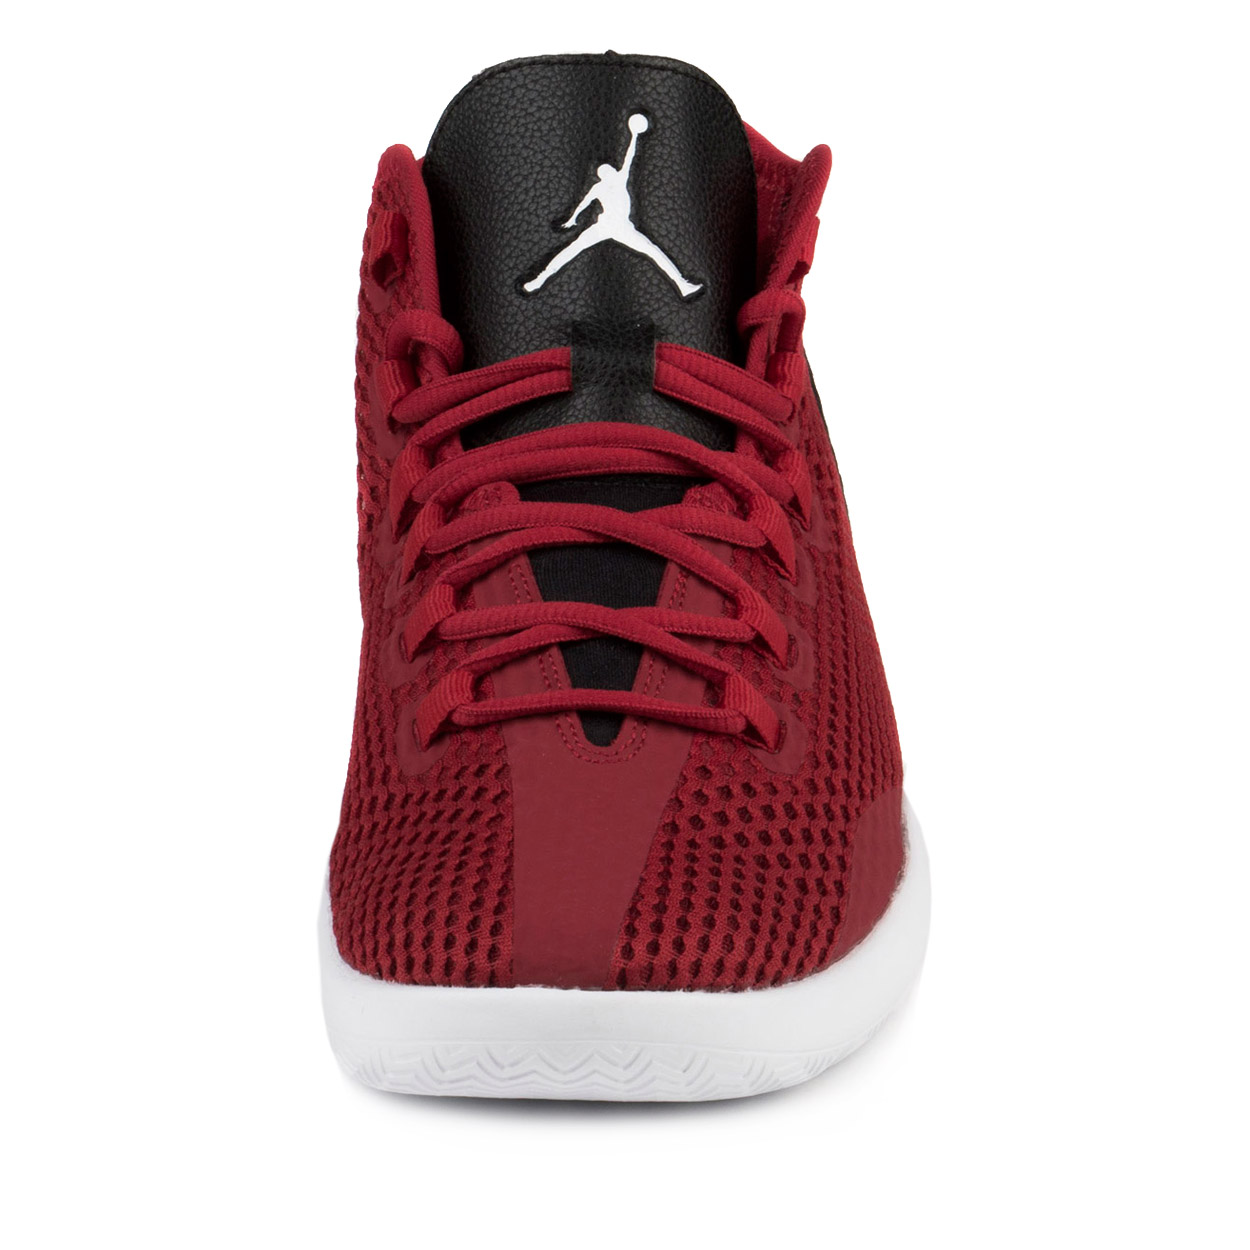 fcd9bb8efae6b0 ... czech nike mens jordan reveal gym red white black 834064 605 walmart.  9f7eb 31600